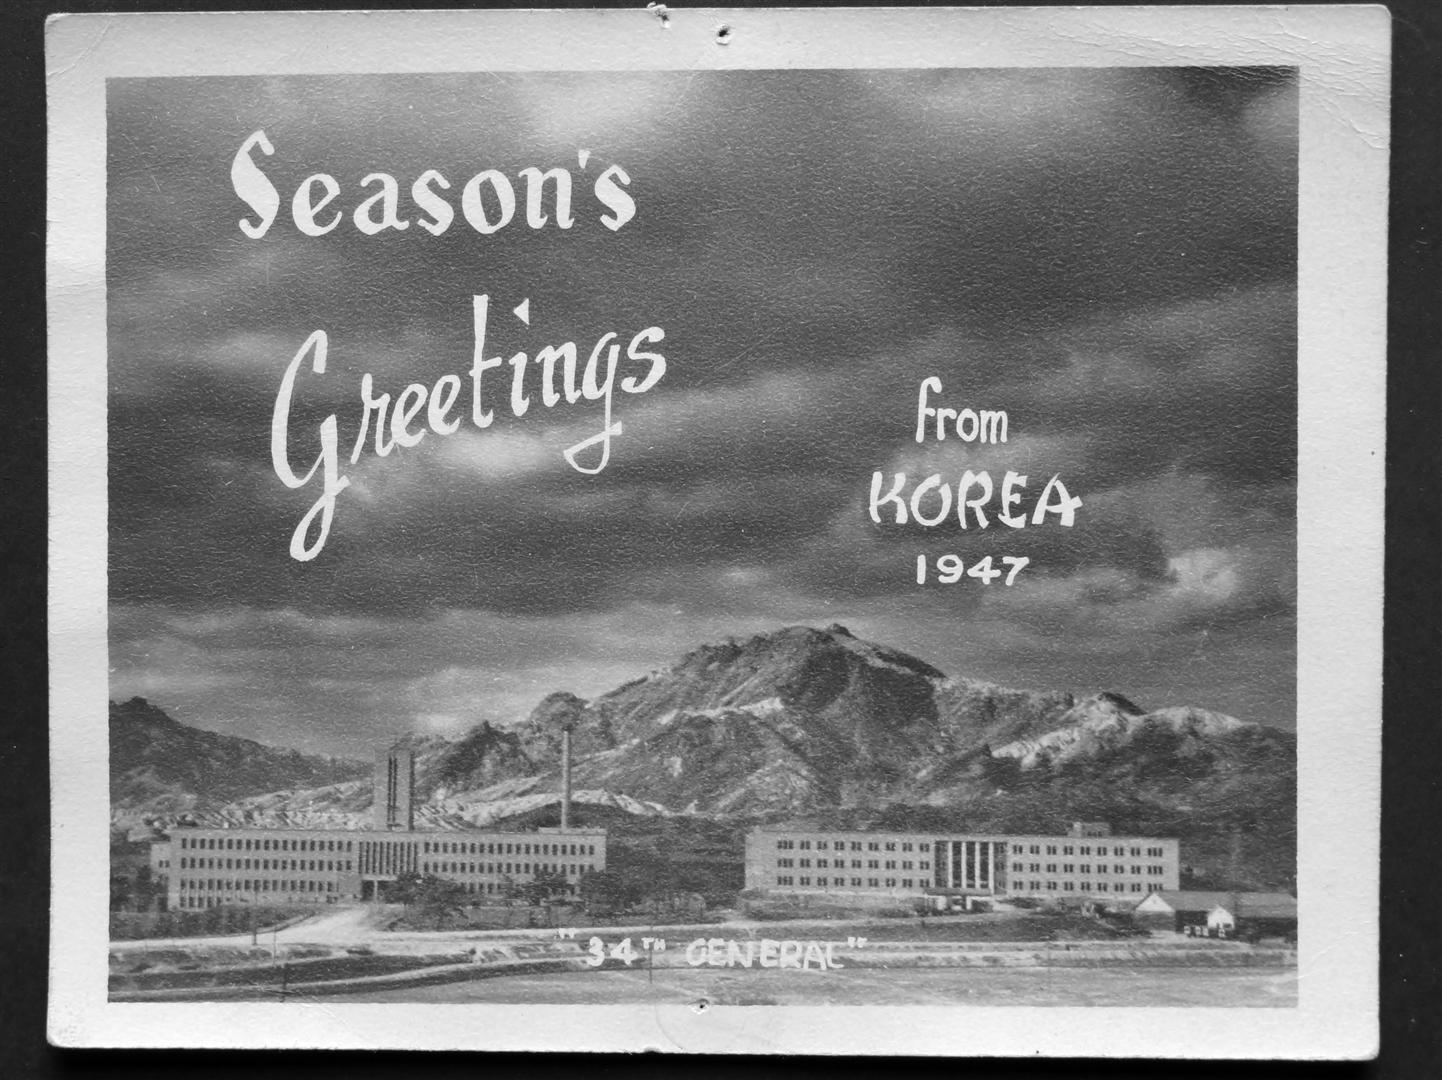 A history of Christmas in Korea